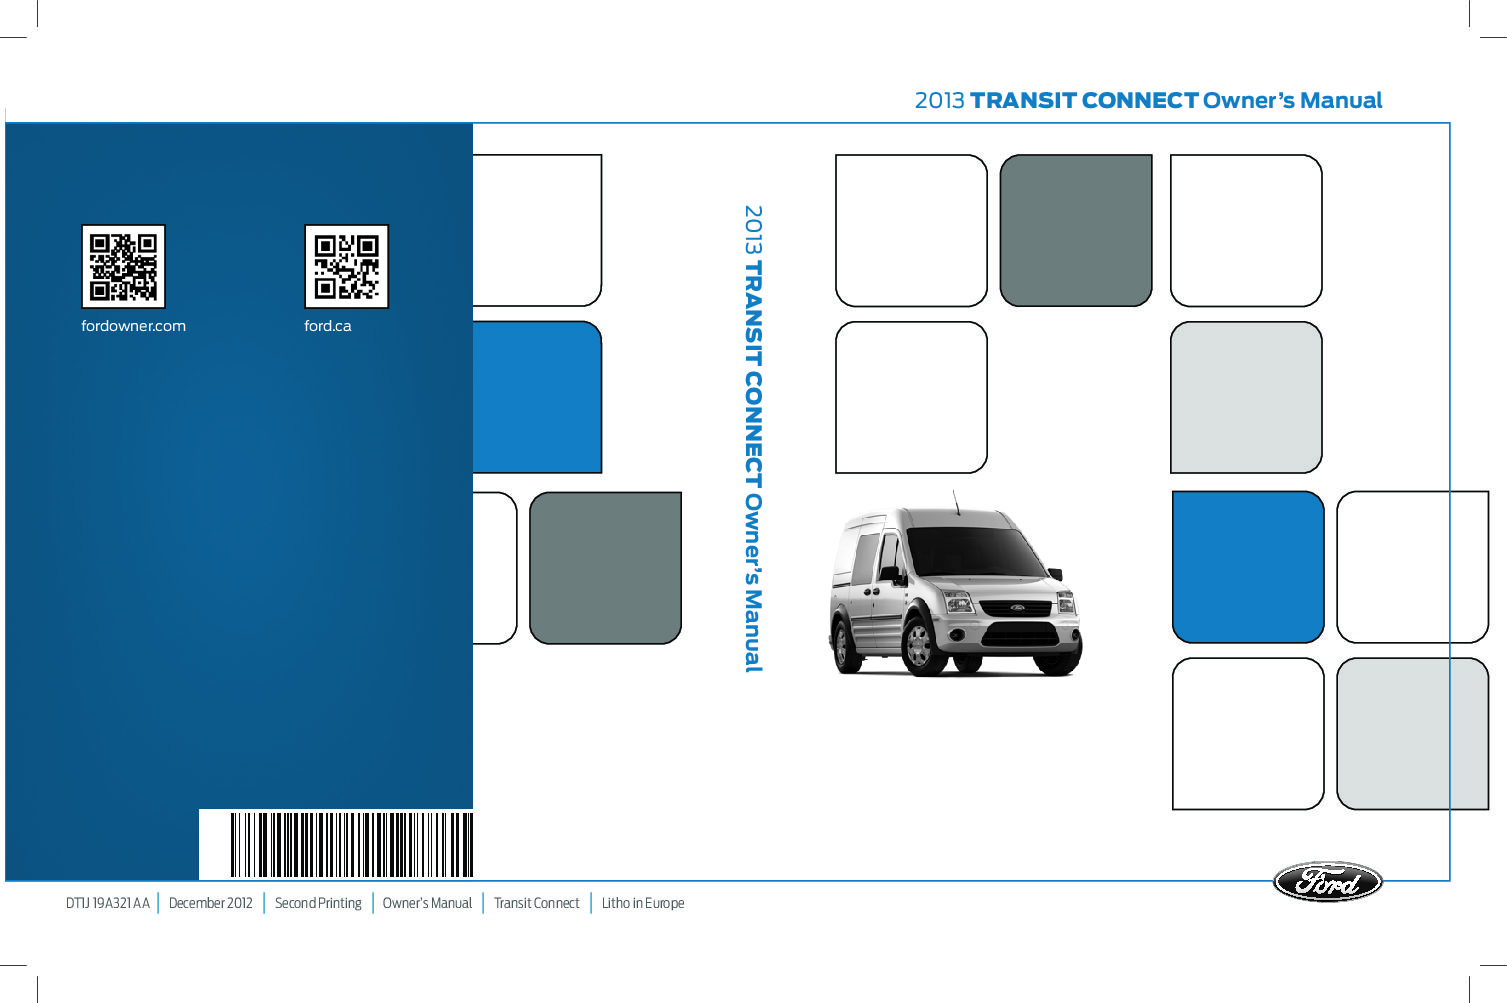 2013 ford transit connect Owners Manual   Just Give Me The Damn Manual